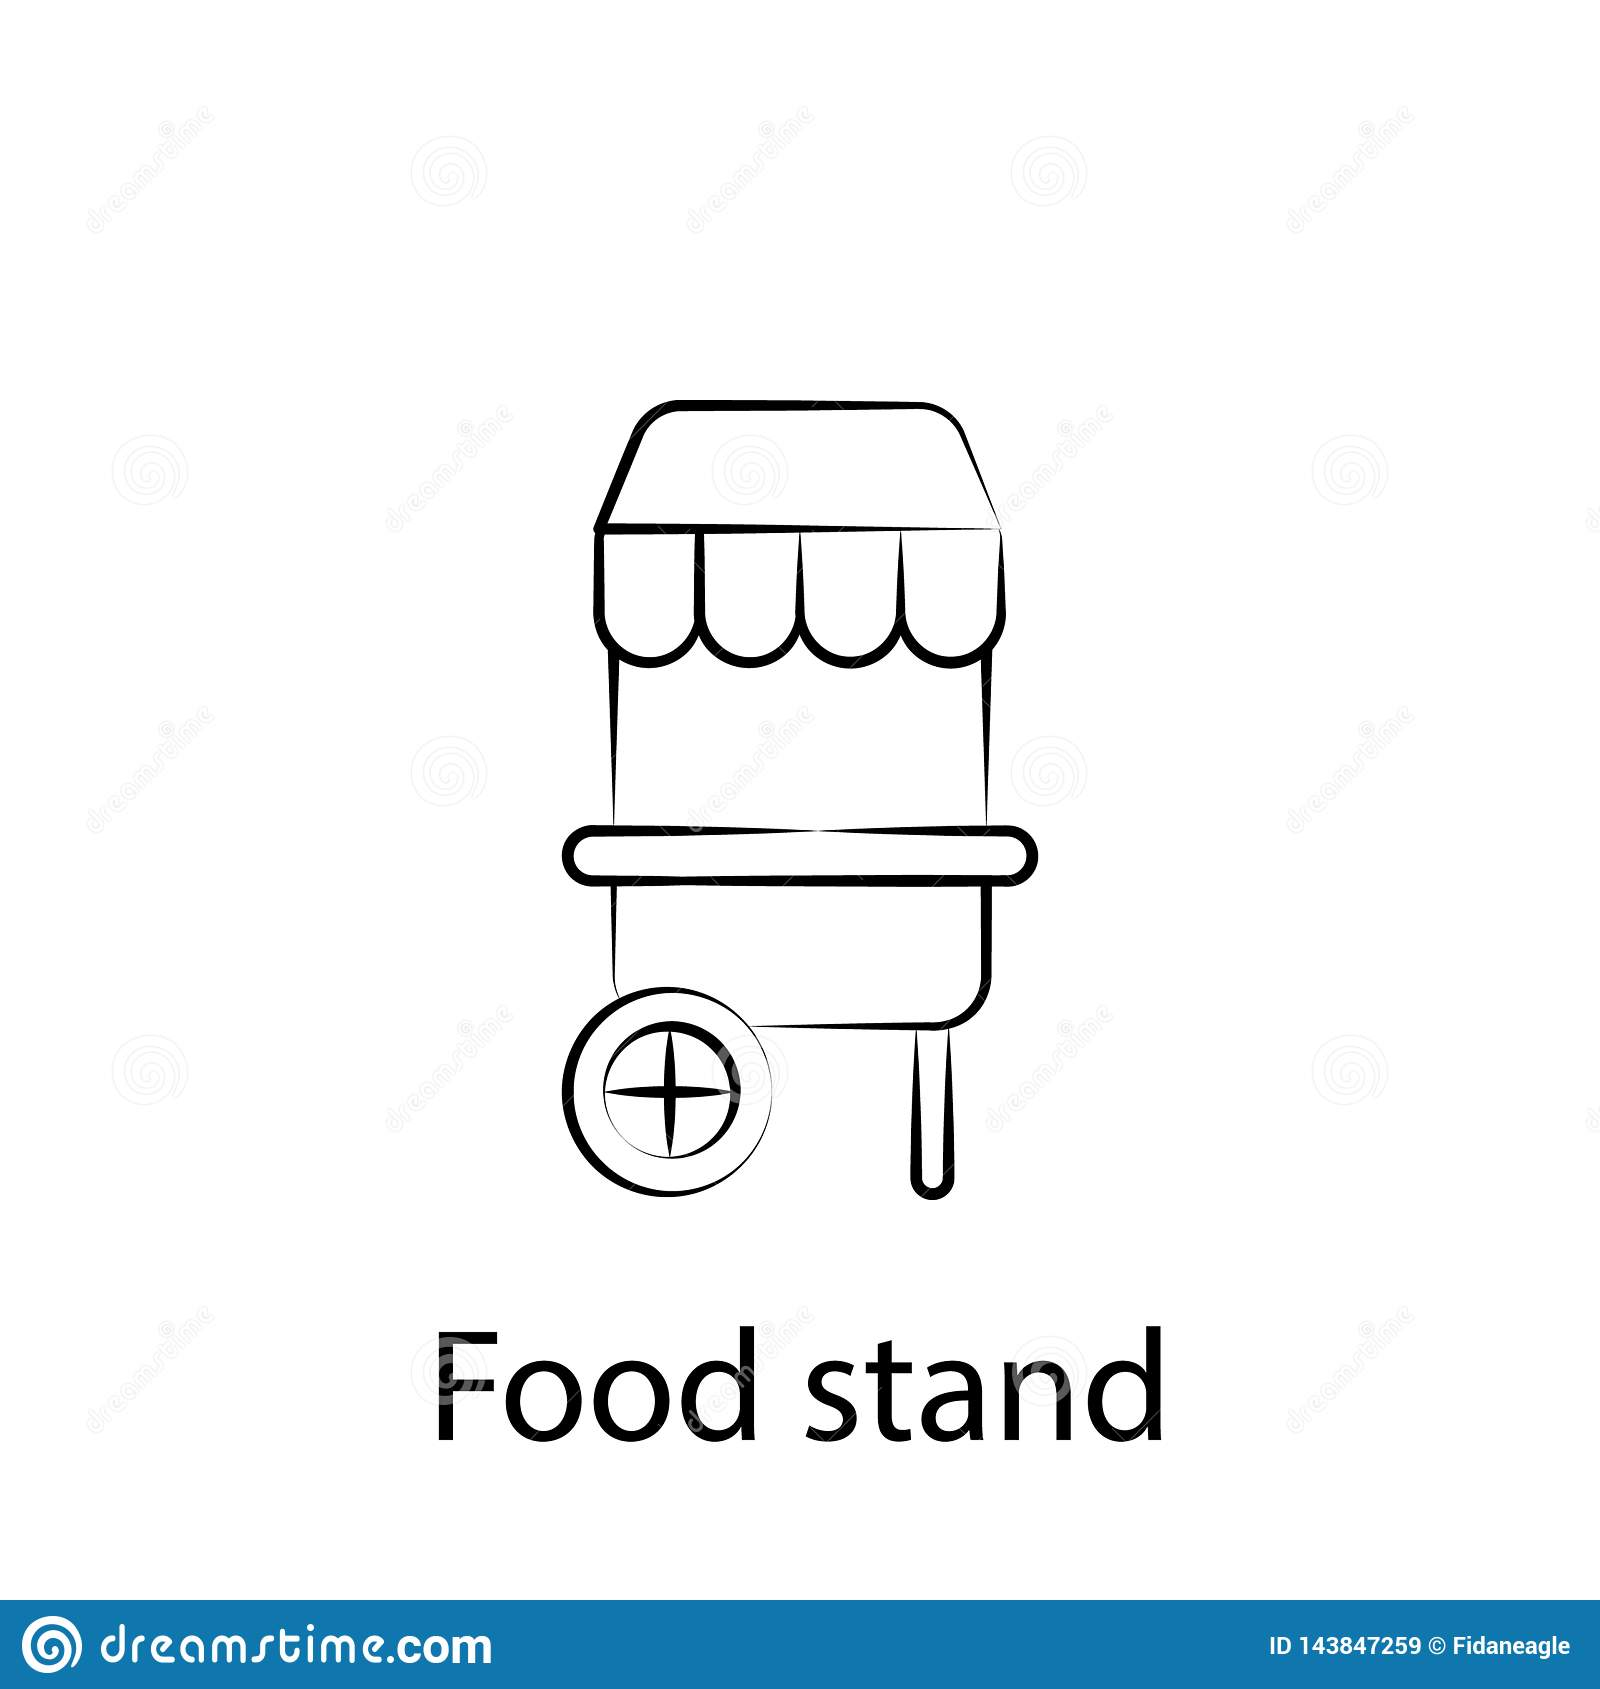 Fast food stand outline icon. Element of food illustration icon. Signs and symbols can be used for web, logo, mobile app, UI, UX